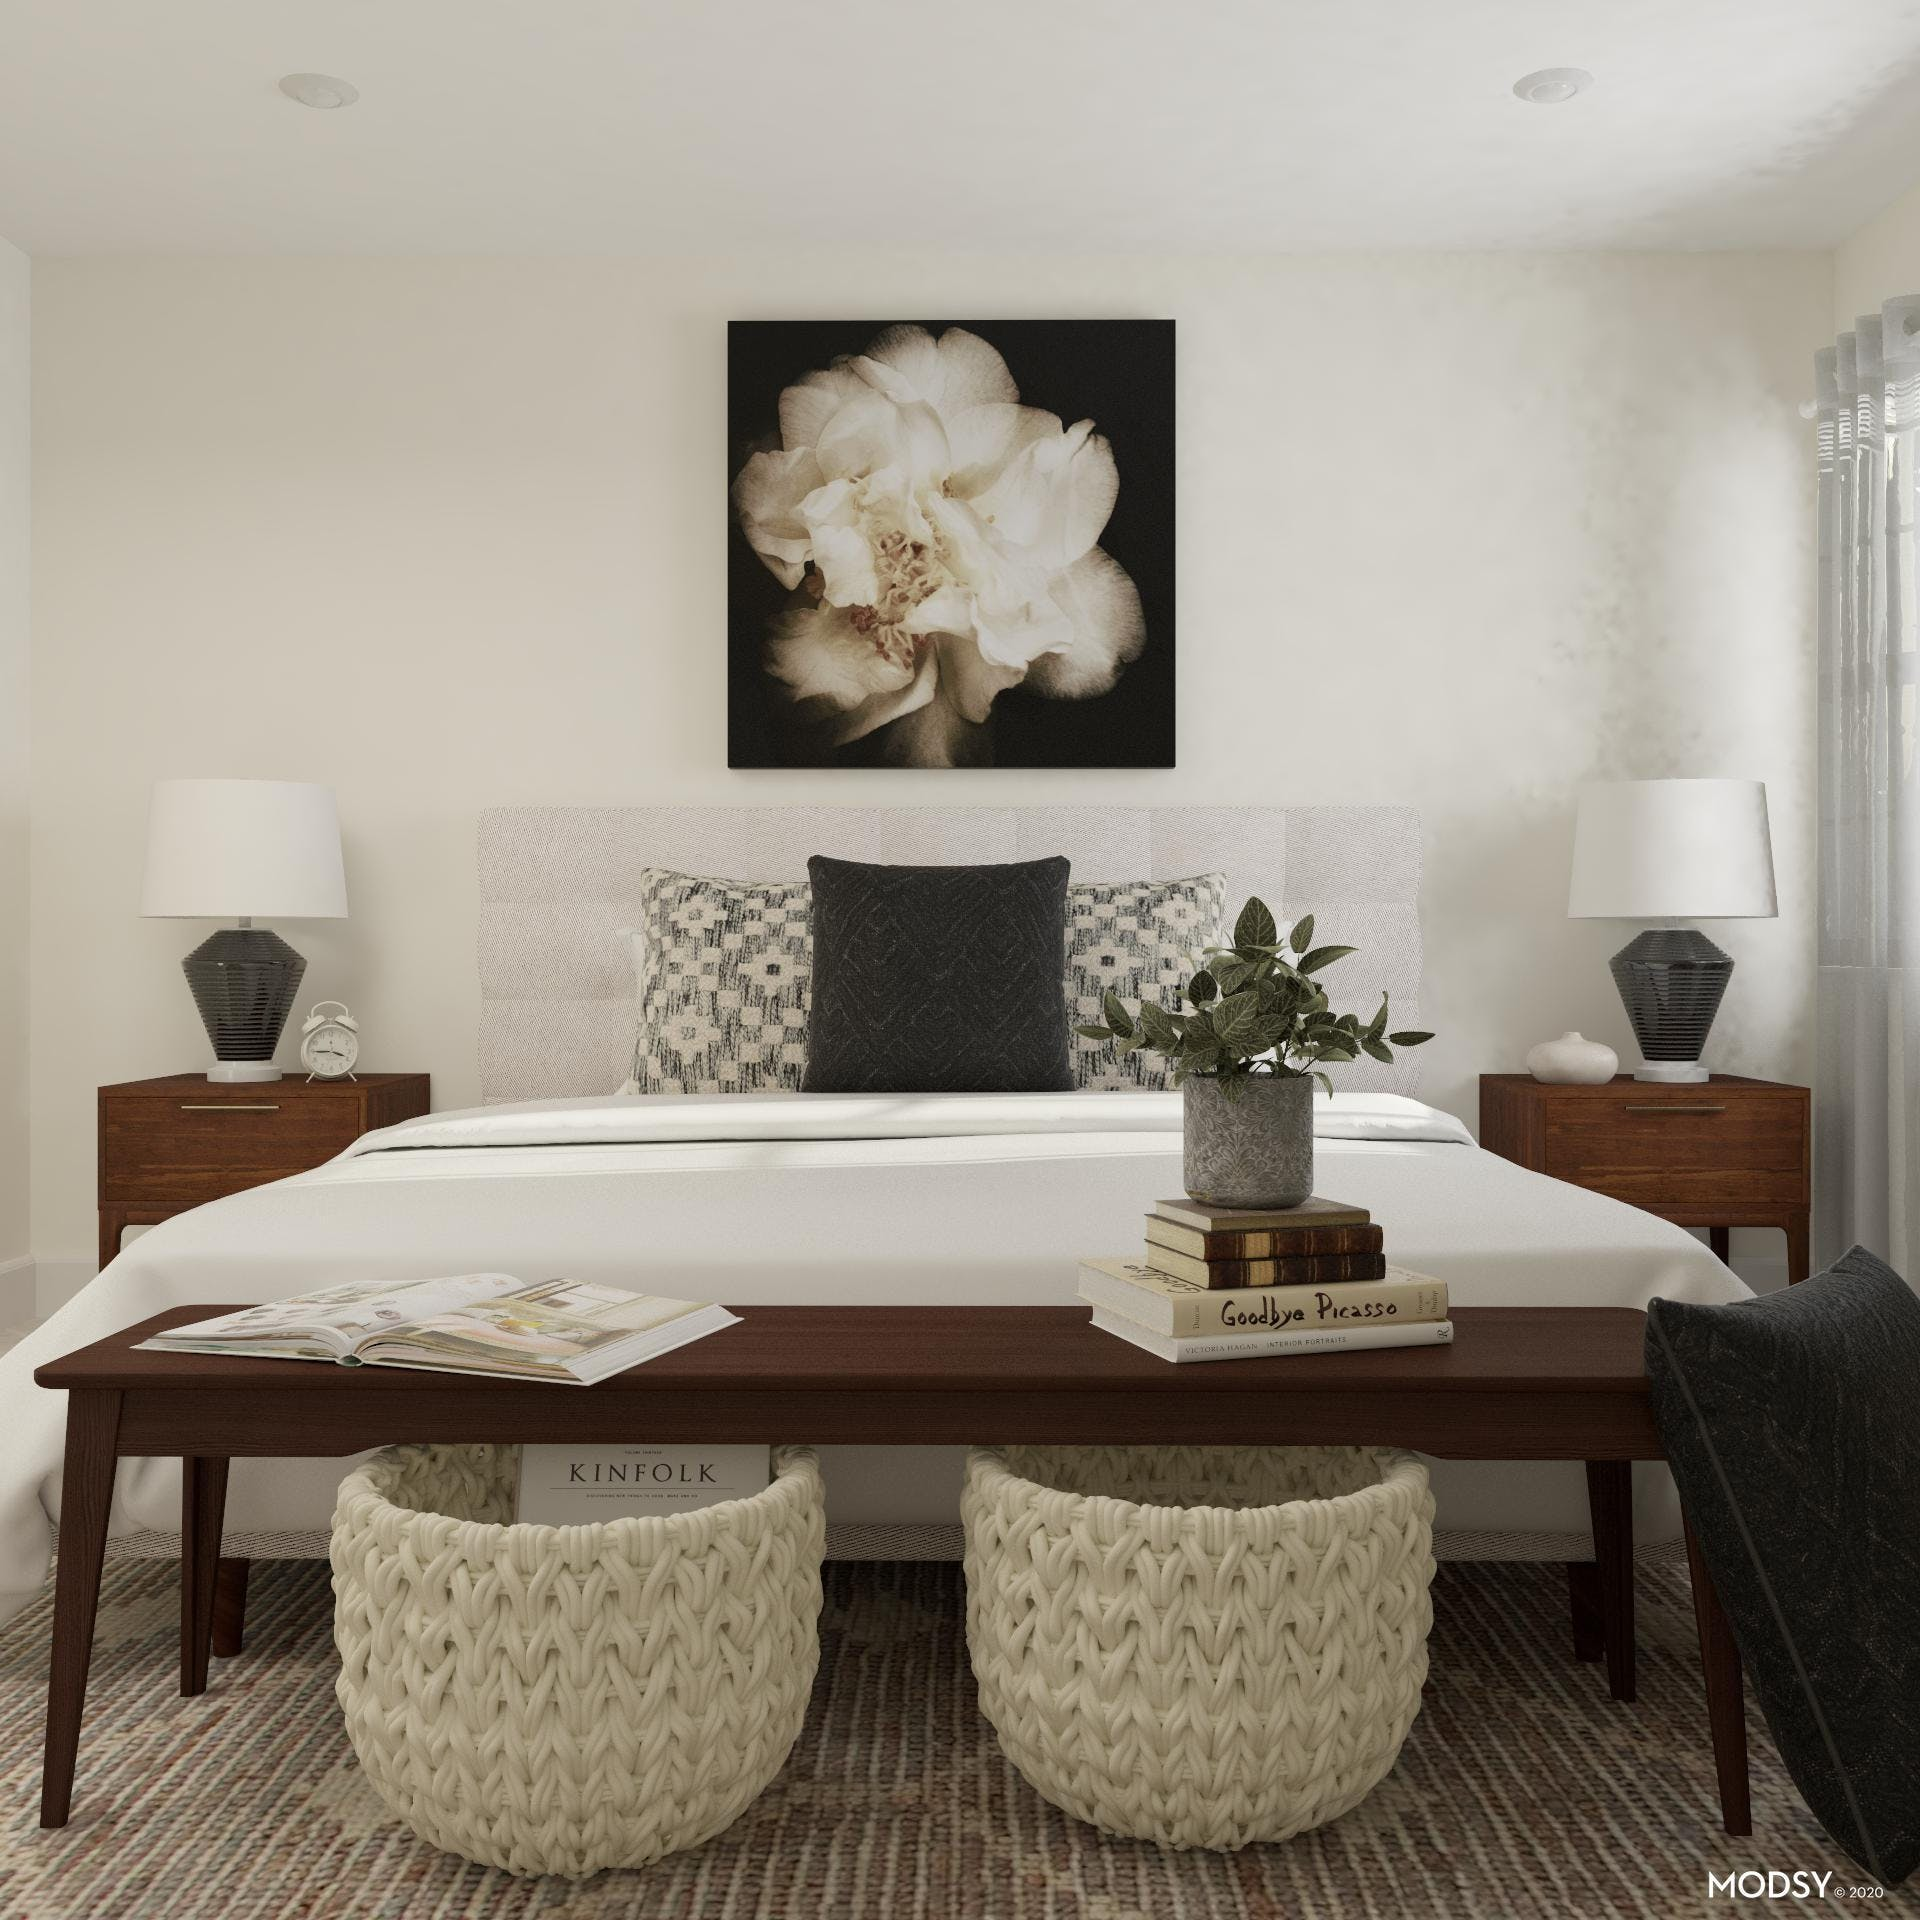 Dimension and Storage in Transitional Bedroom